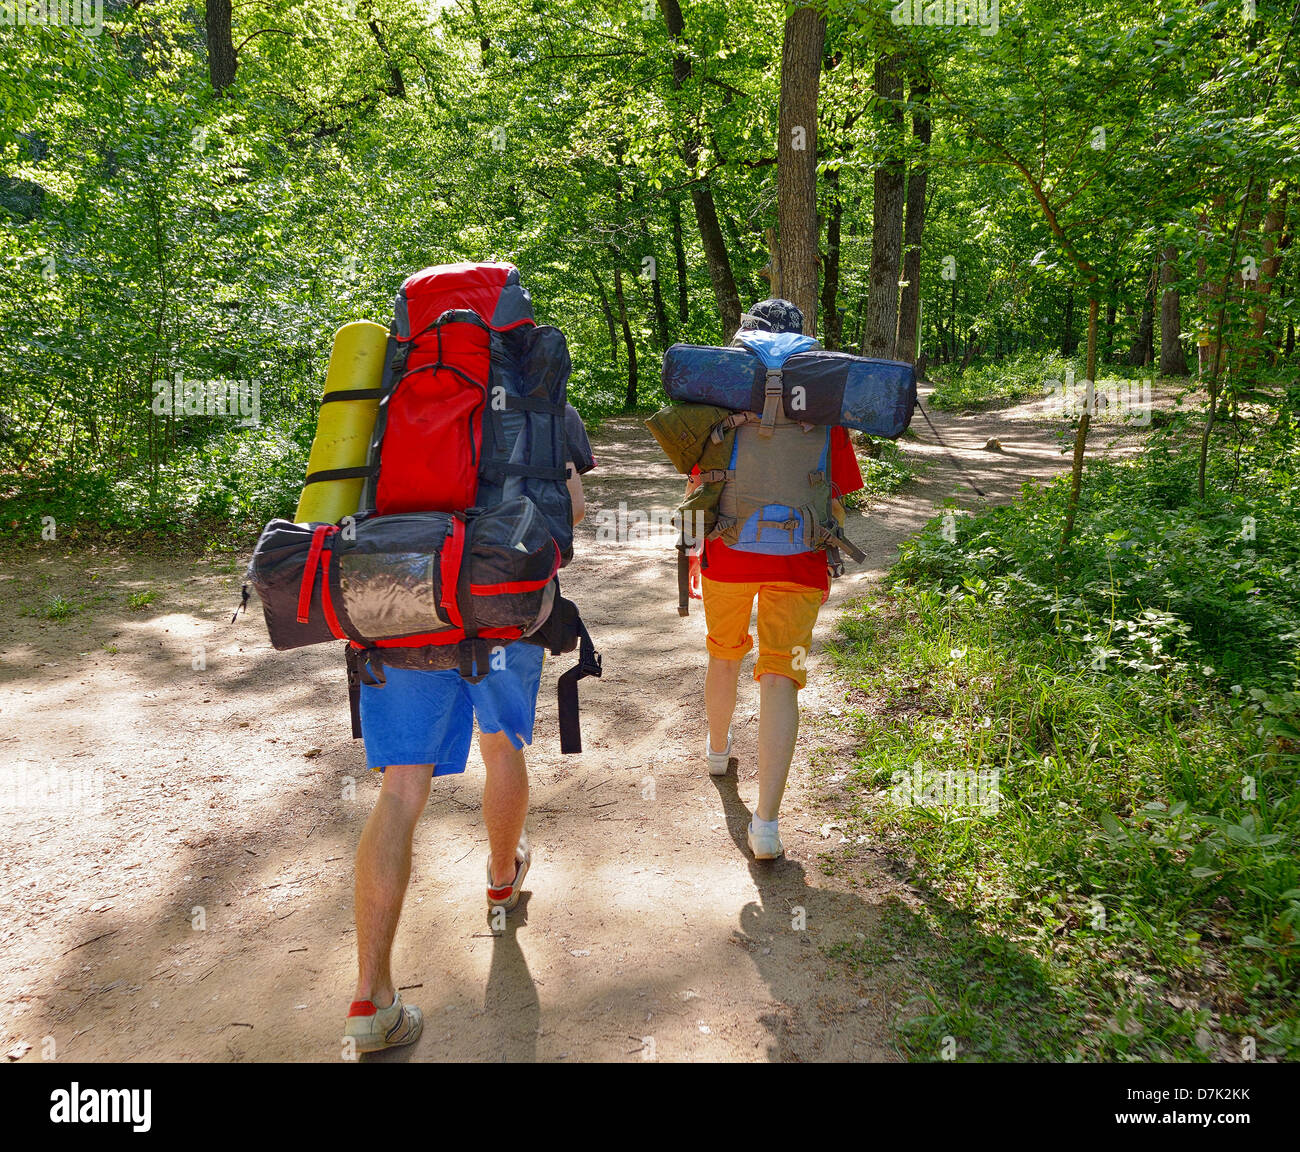 Tourists on the march with backpacks - Stock Image